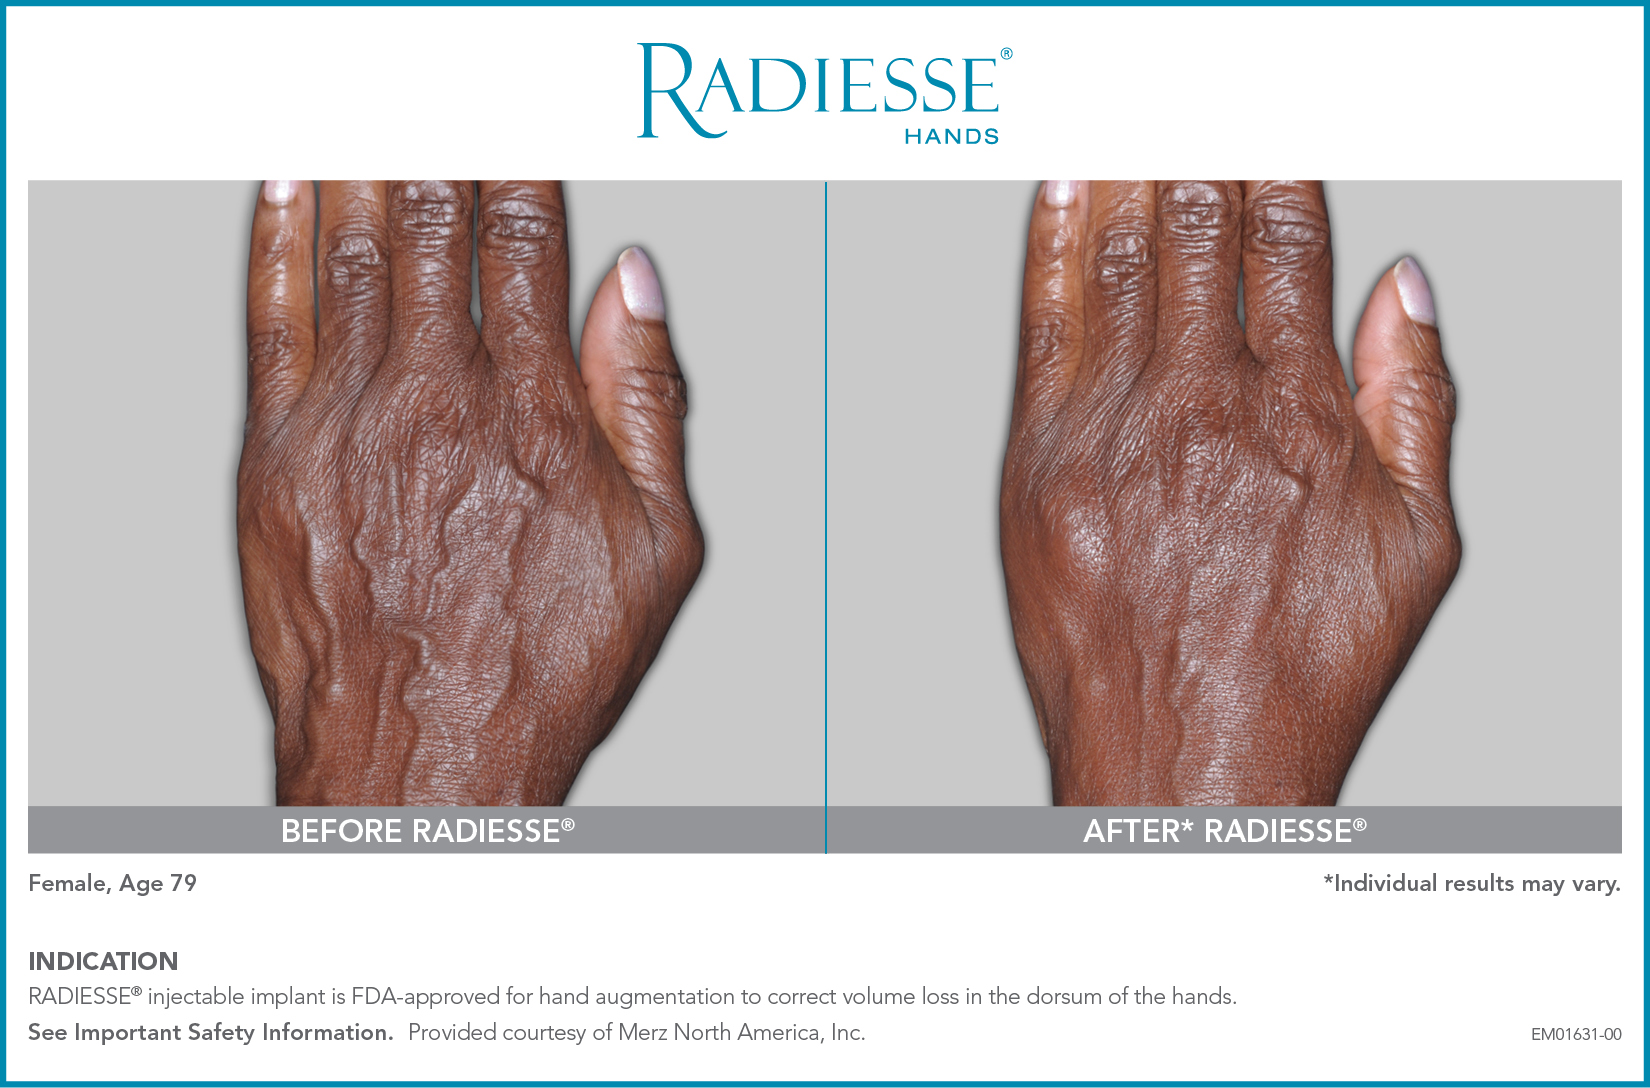 Radiesse for Hands